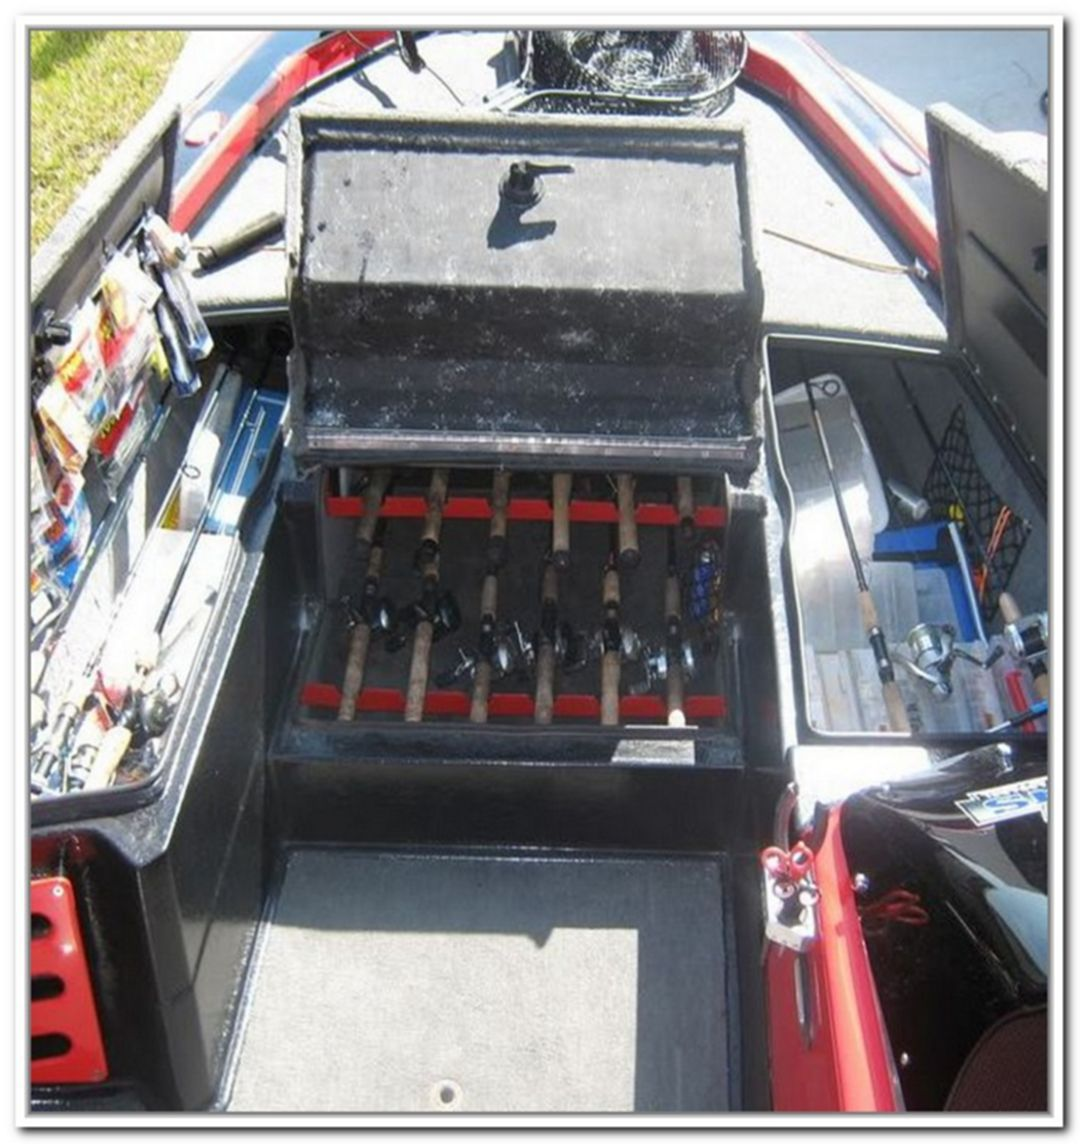 medium resolution of best boat organization ideas to keep your boat clean 55 excellent ideas